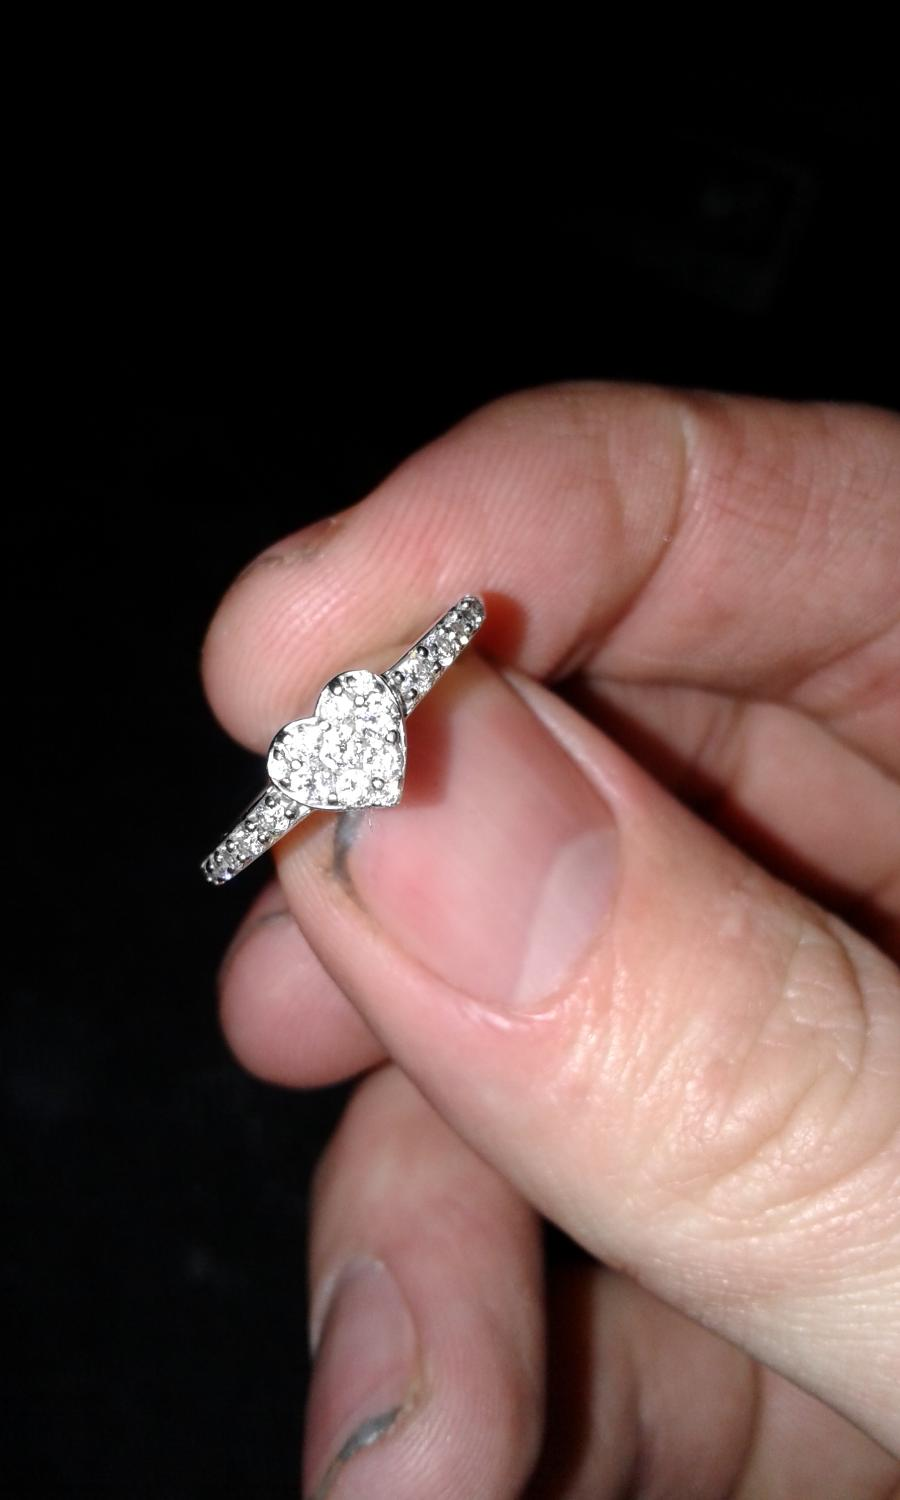 Best Zales Engagement Ring for sale in Hazleton, Pennsylvania for 2018